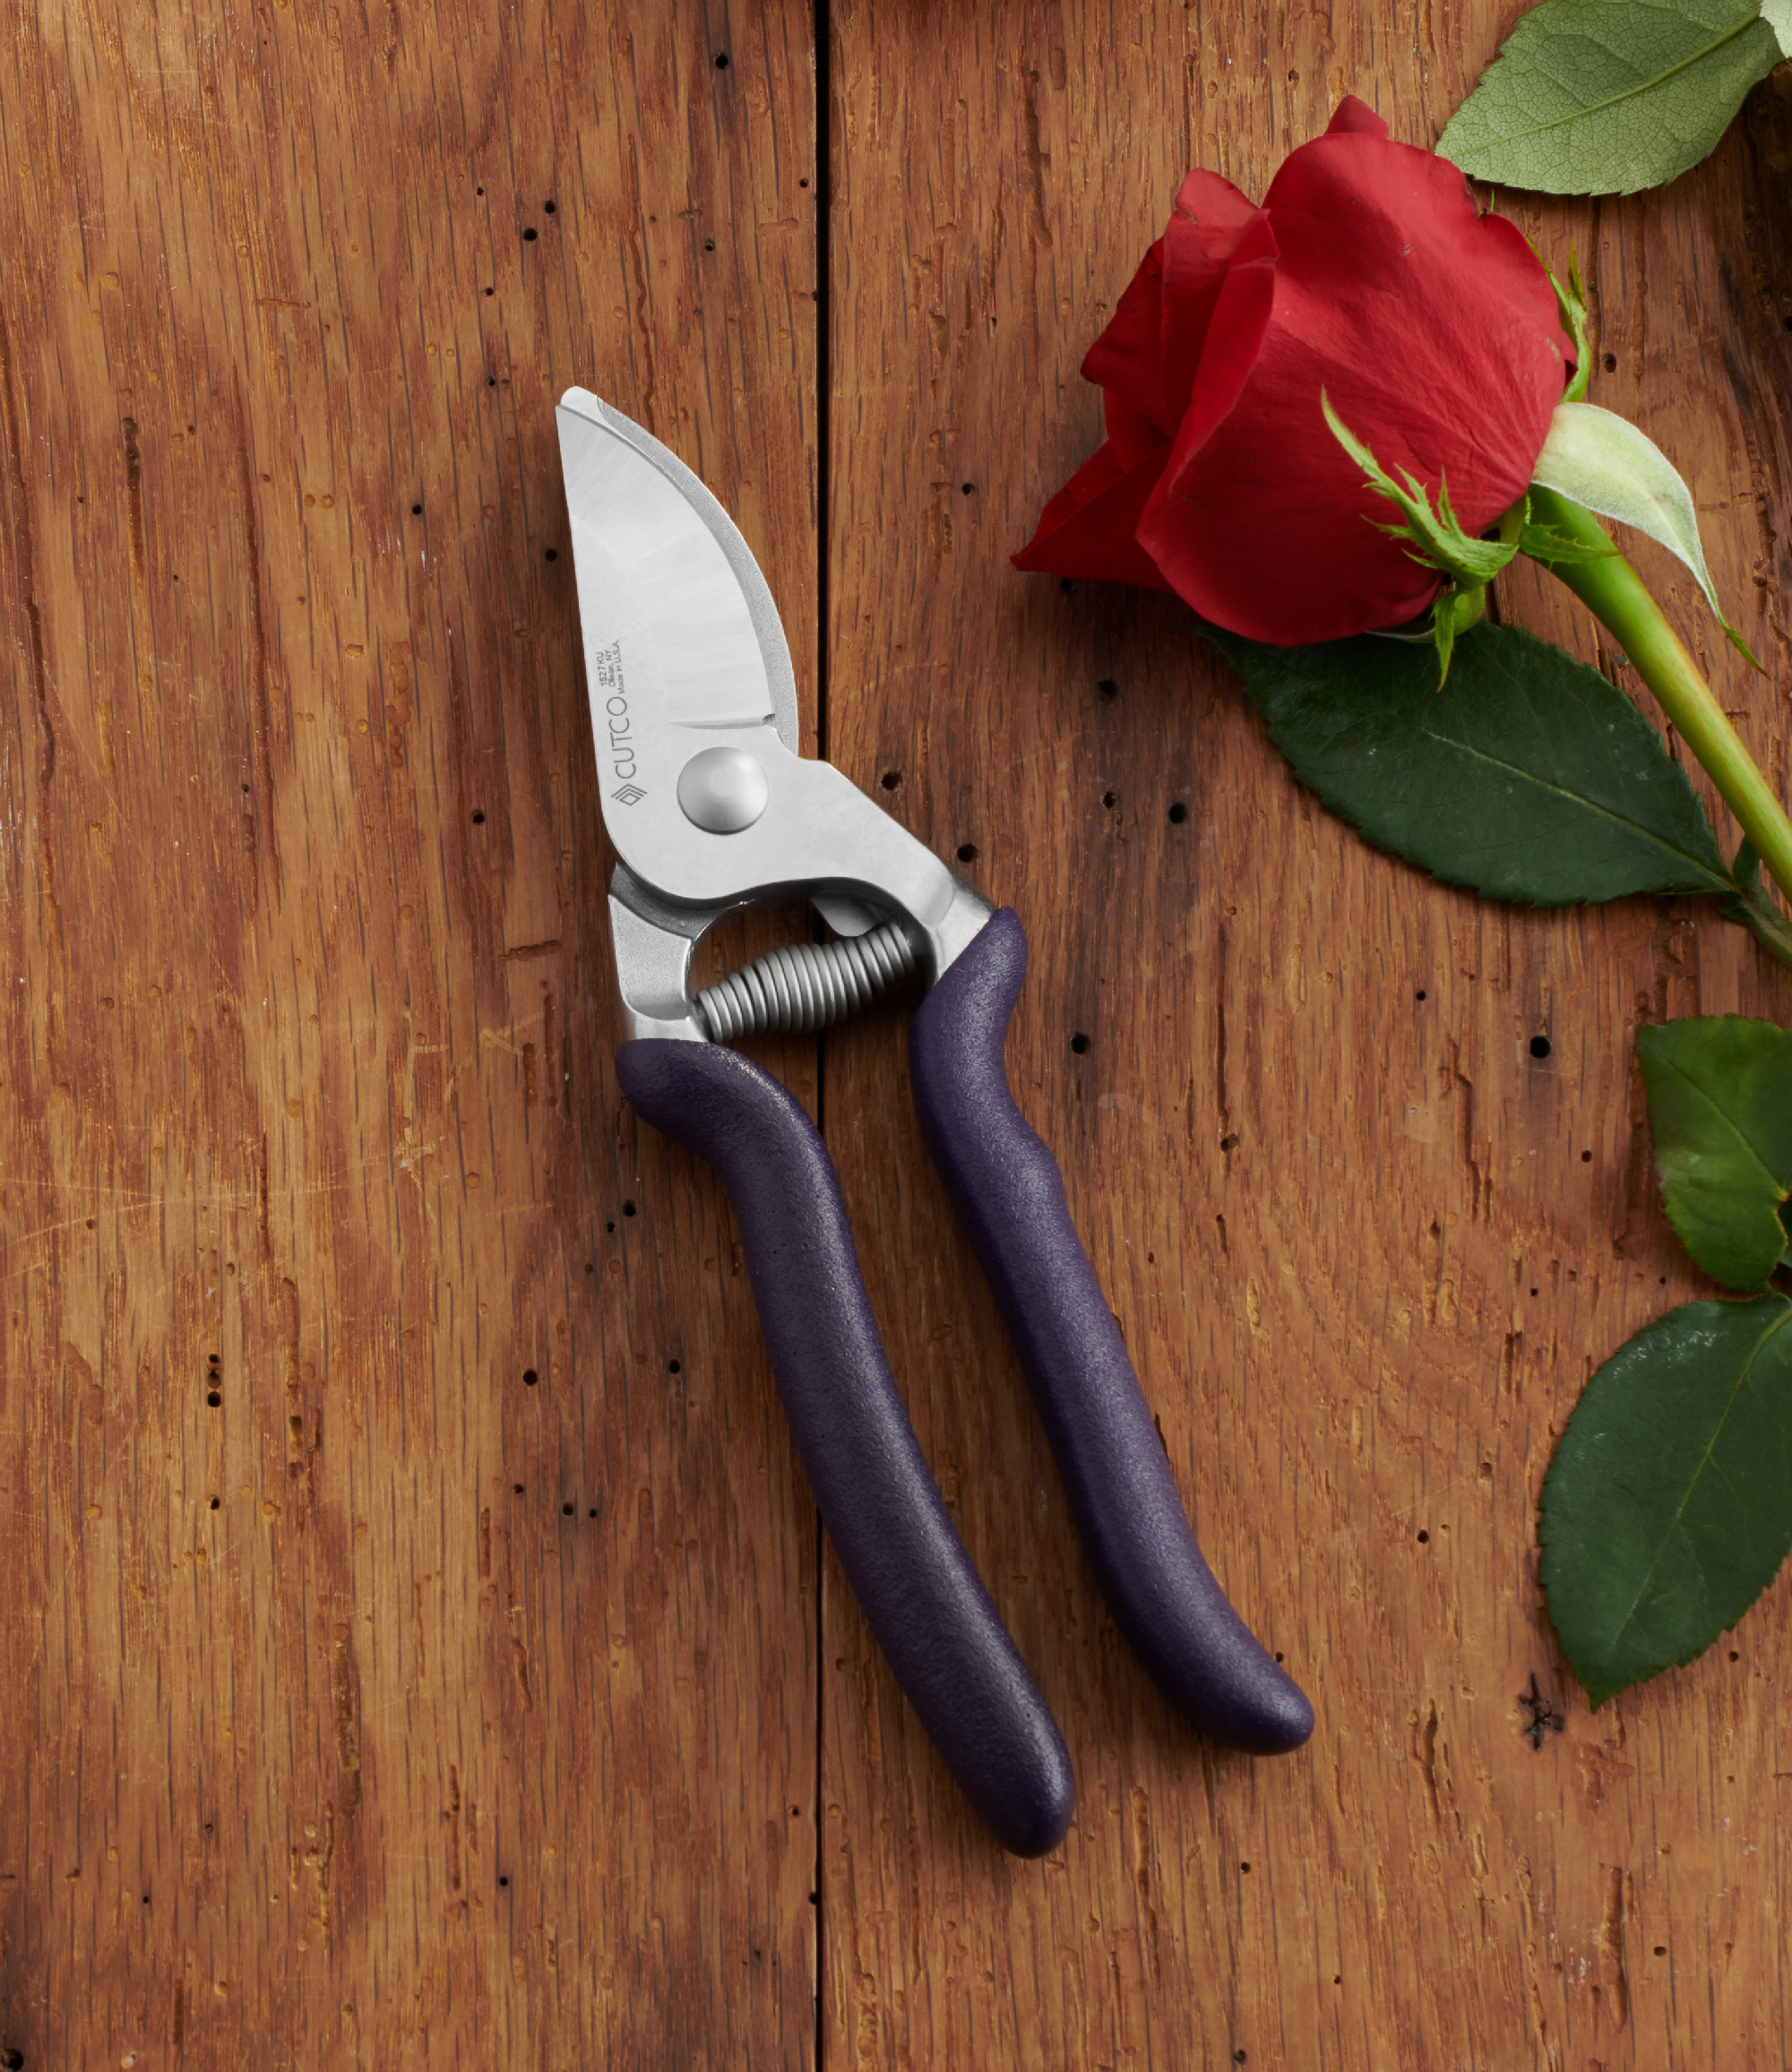 bypass pruners - Garden Shears